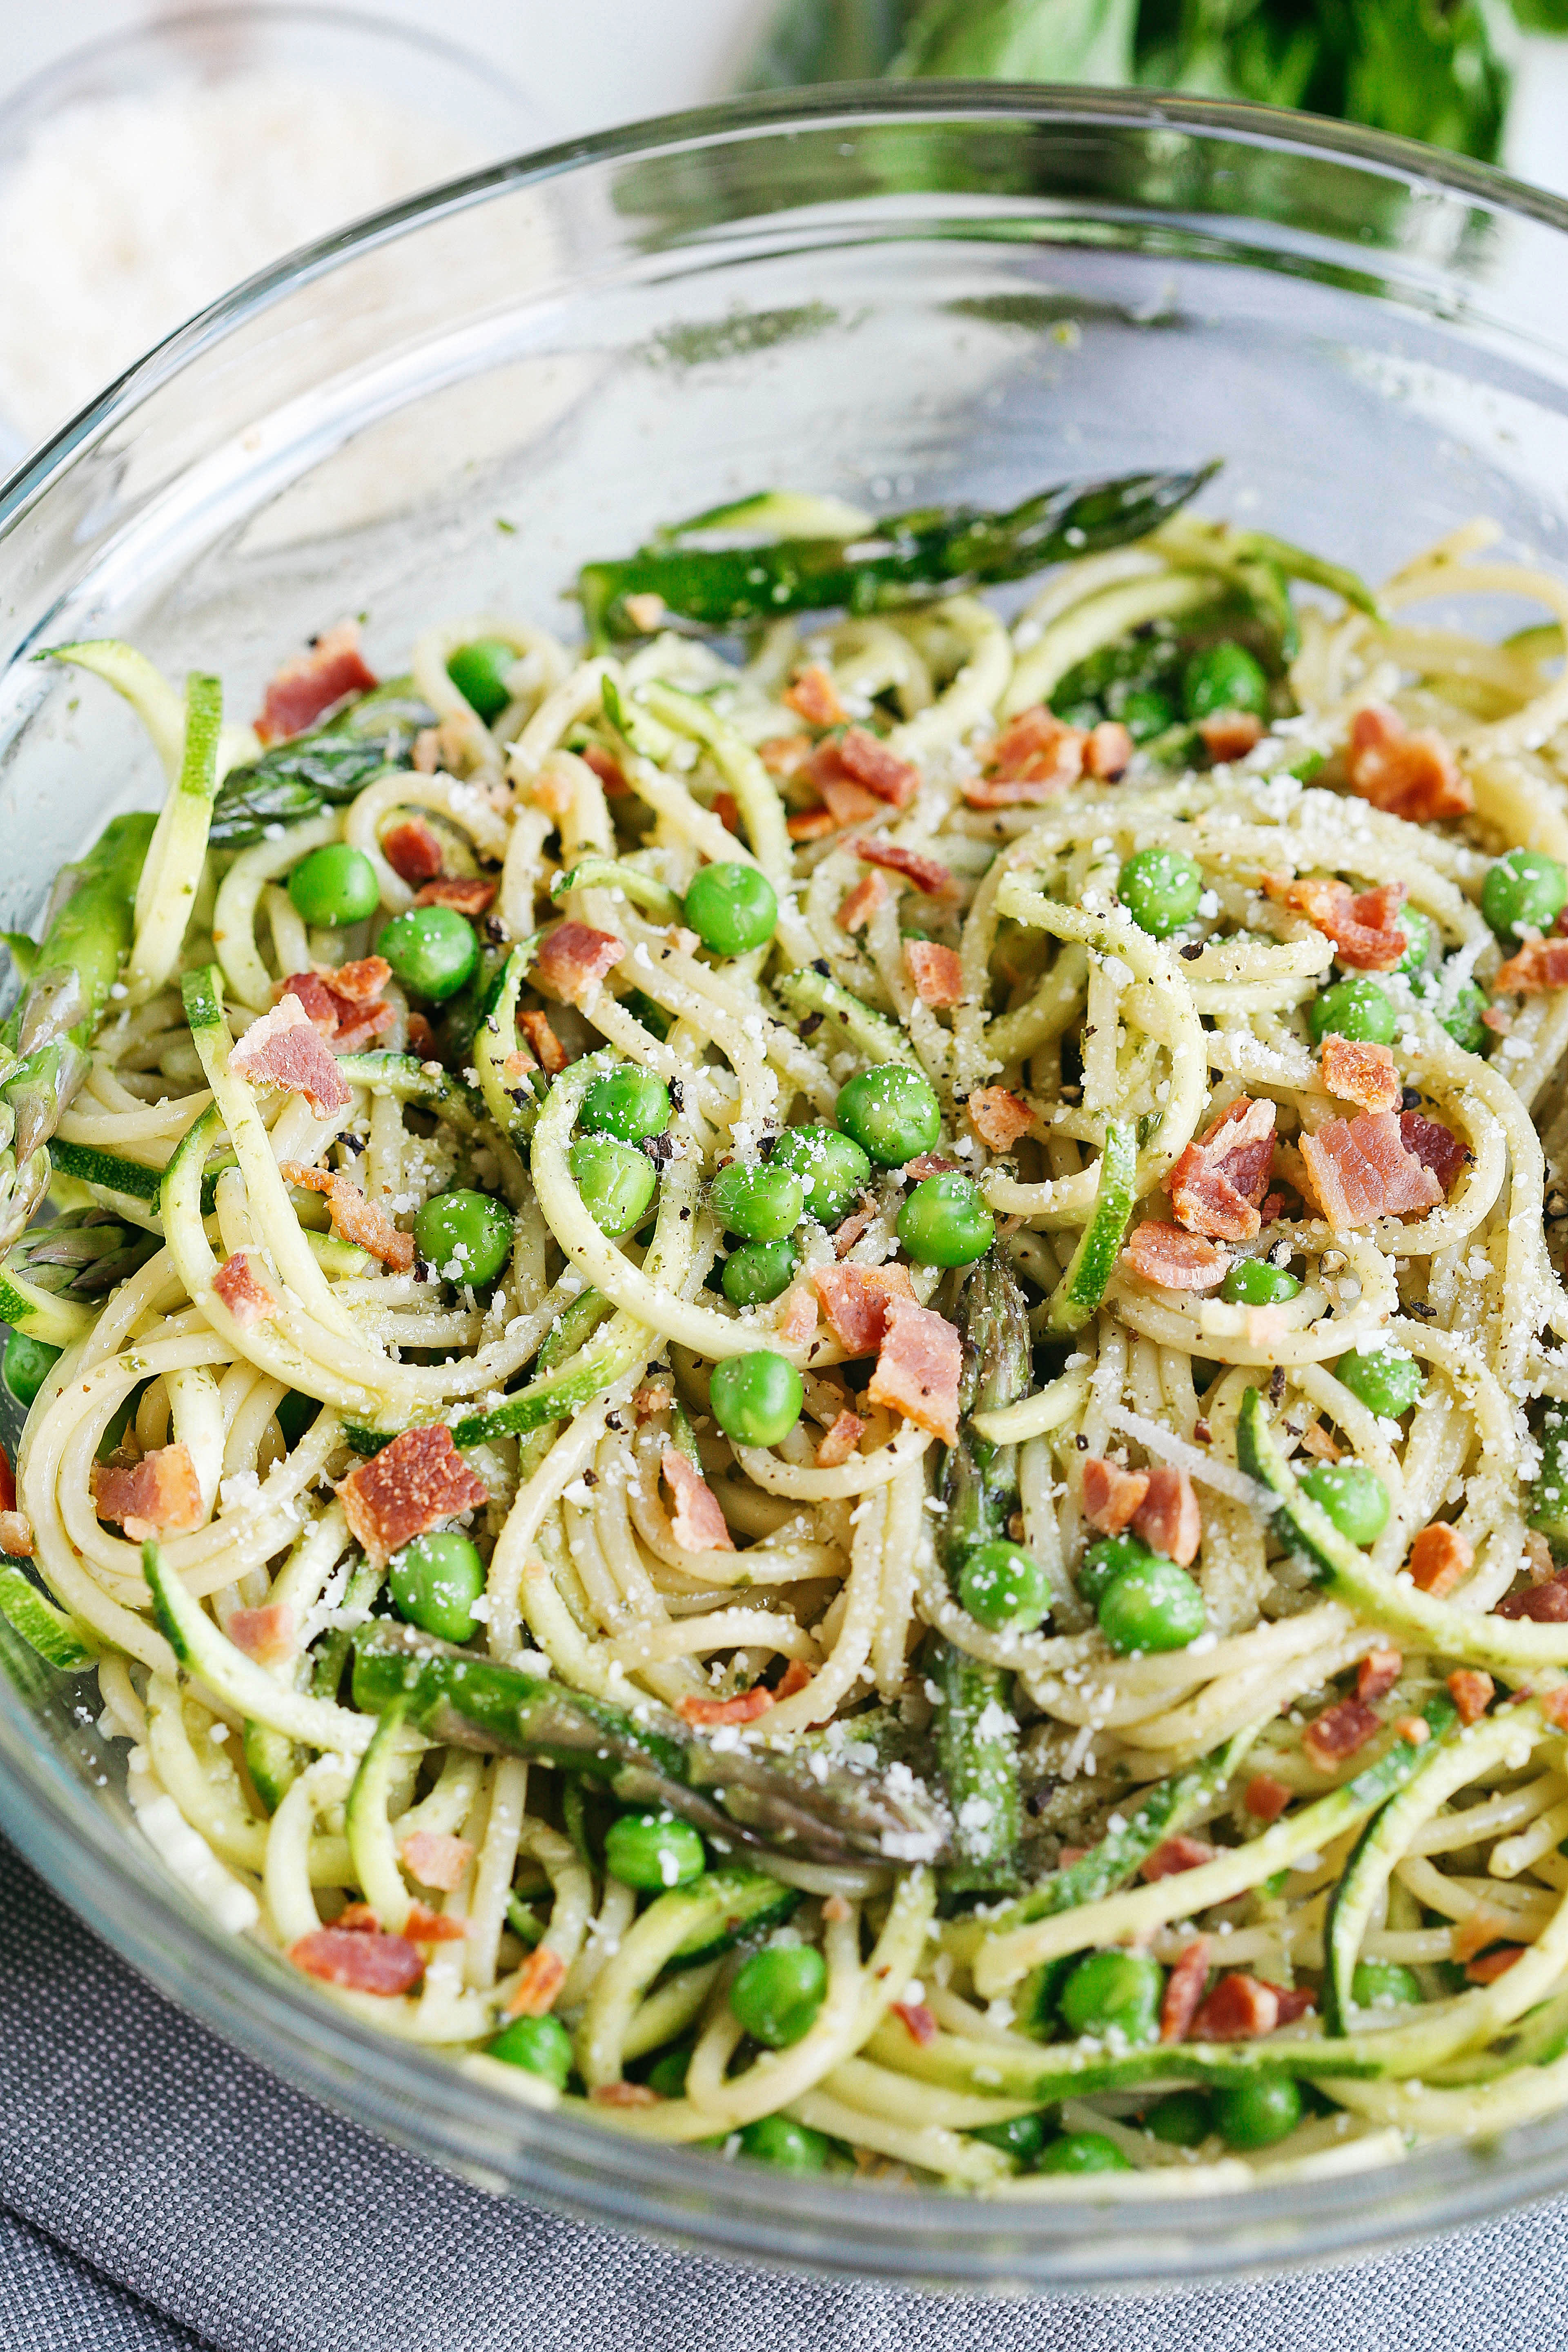 This delicious pasta salad is a lighter take on your favorite summer side dish that is loaded with fresh veggies and crunchy bacon all tossed together with a sweet basil vinaigrette for a meal that is both healthy and comfort food all in one!